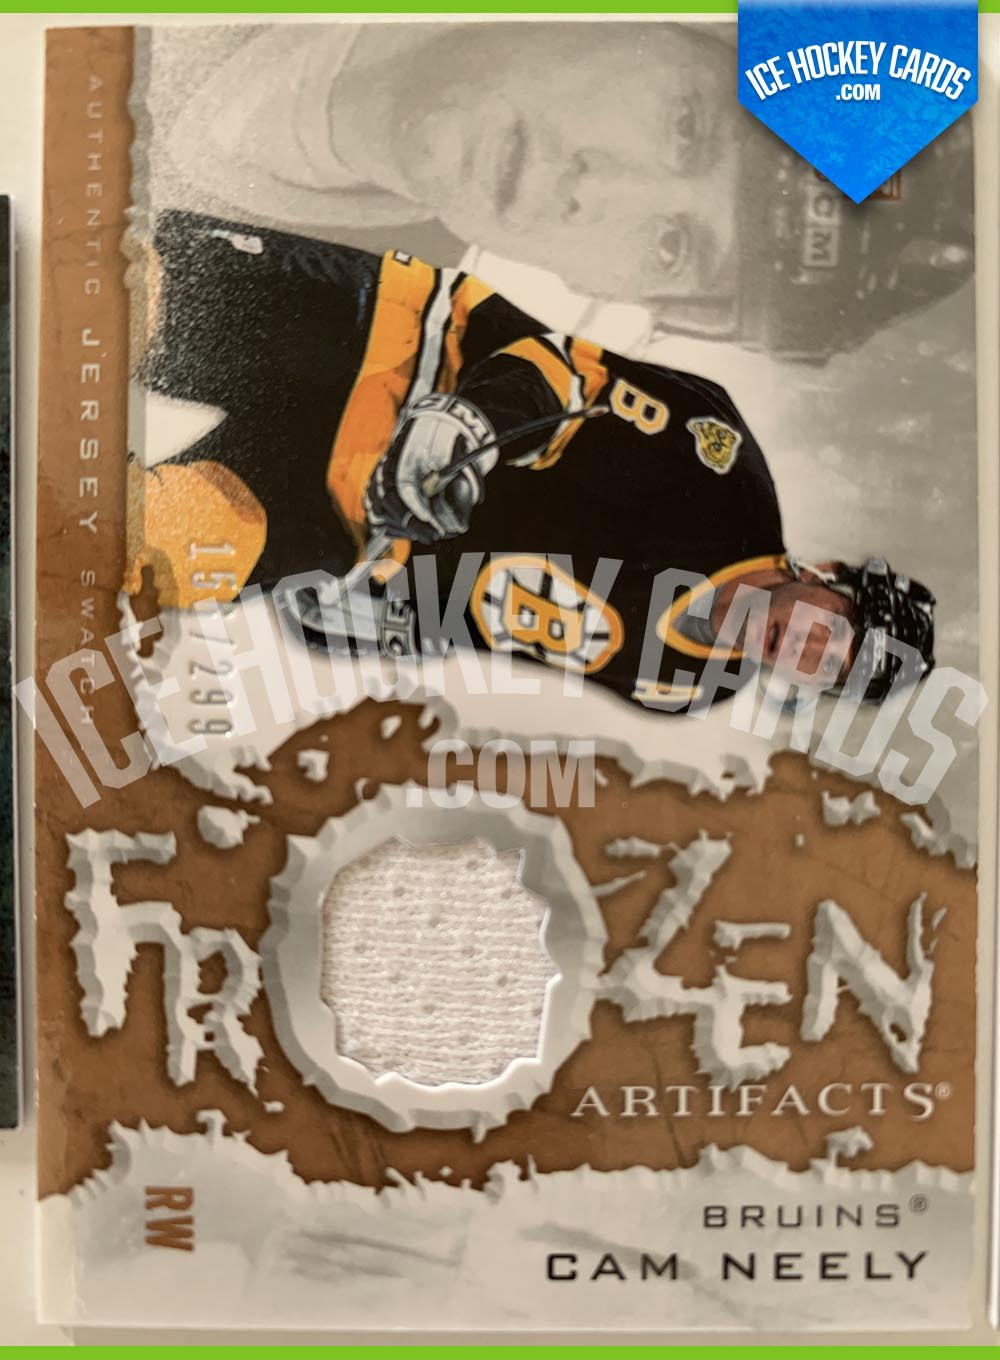 Upper Deck - Artifacts 2007-08 - Cam Neely Frozen Artifacts Authentic Jersey Swatch Card